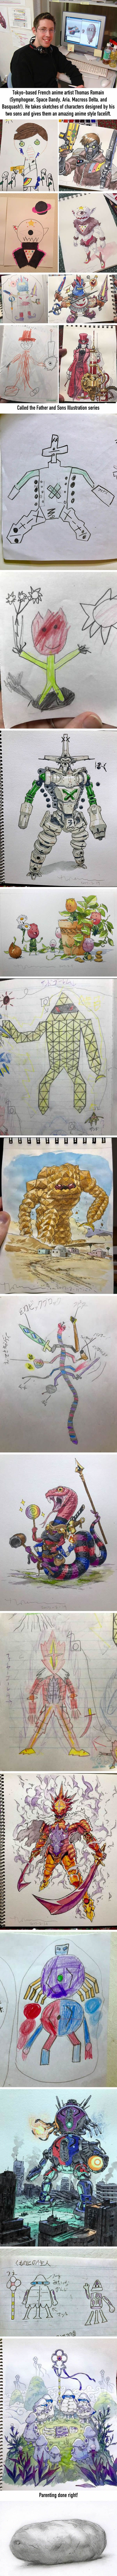 Symphogear Art Designer Turns His Sons Sketches Into Badass - Dad transforms his sons drawings into amazing anime characters